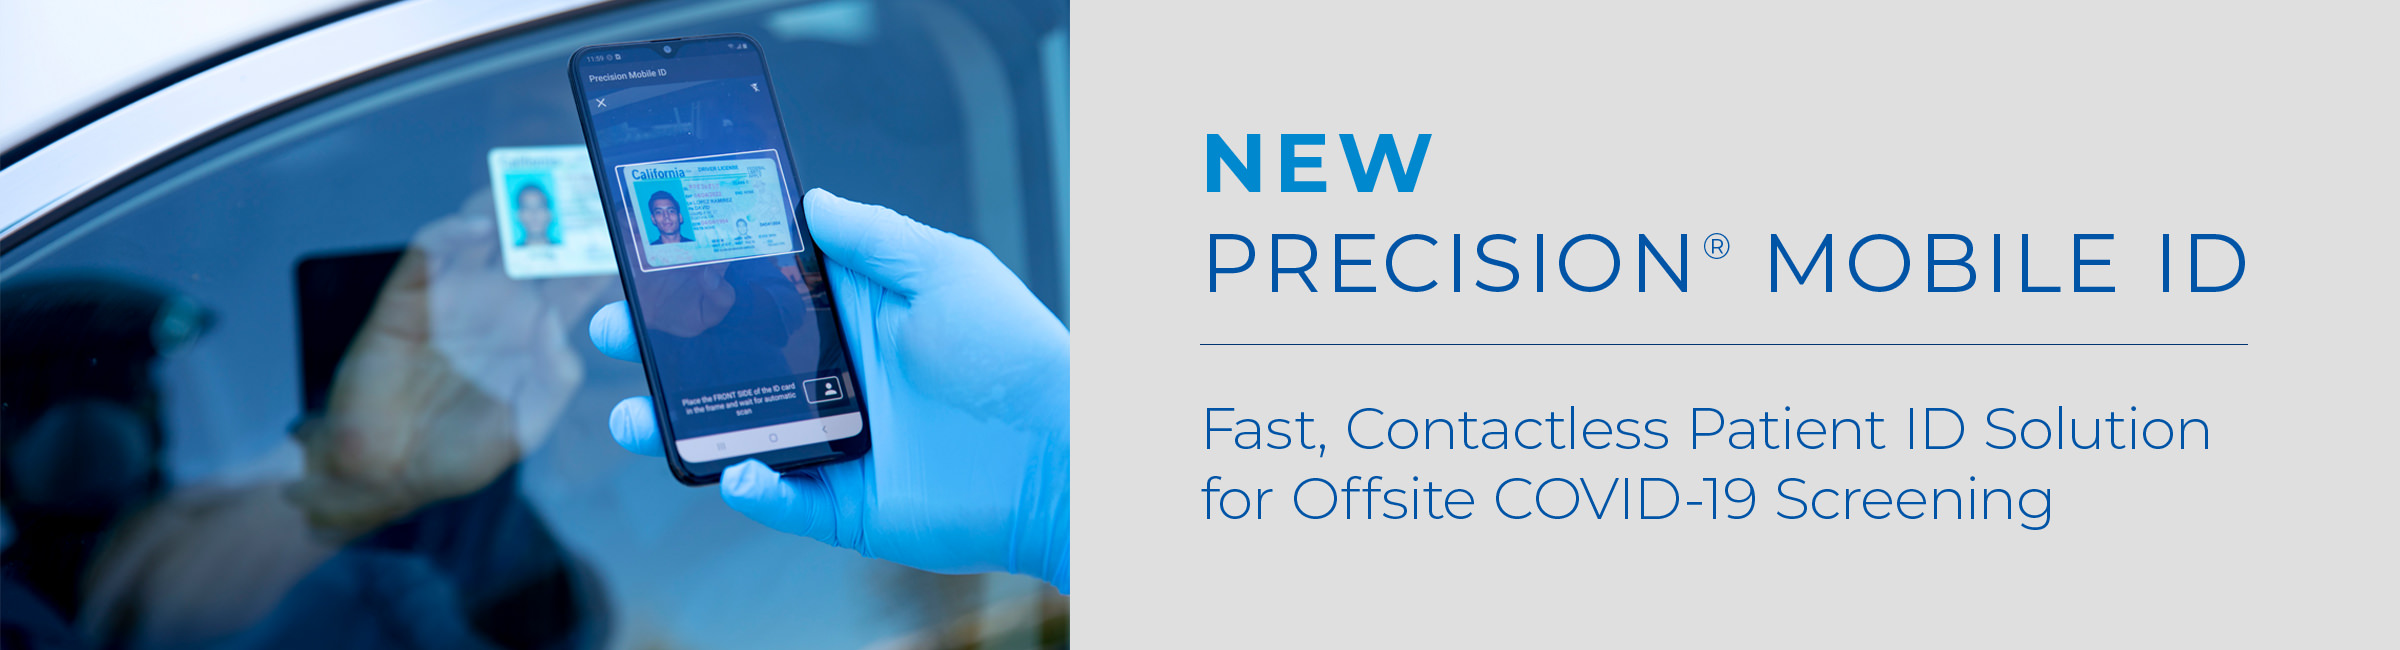 Precision® Mobile ID - Contactless, Scan-to-Print Patient ID Solution for Offsite COVID-19 Screening